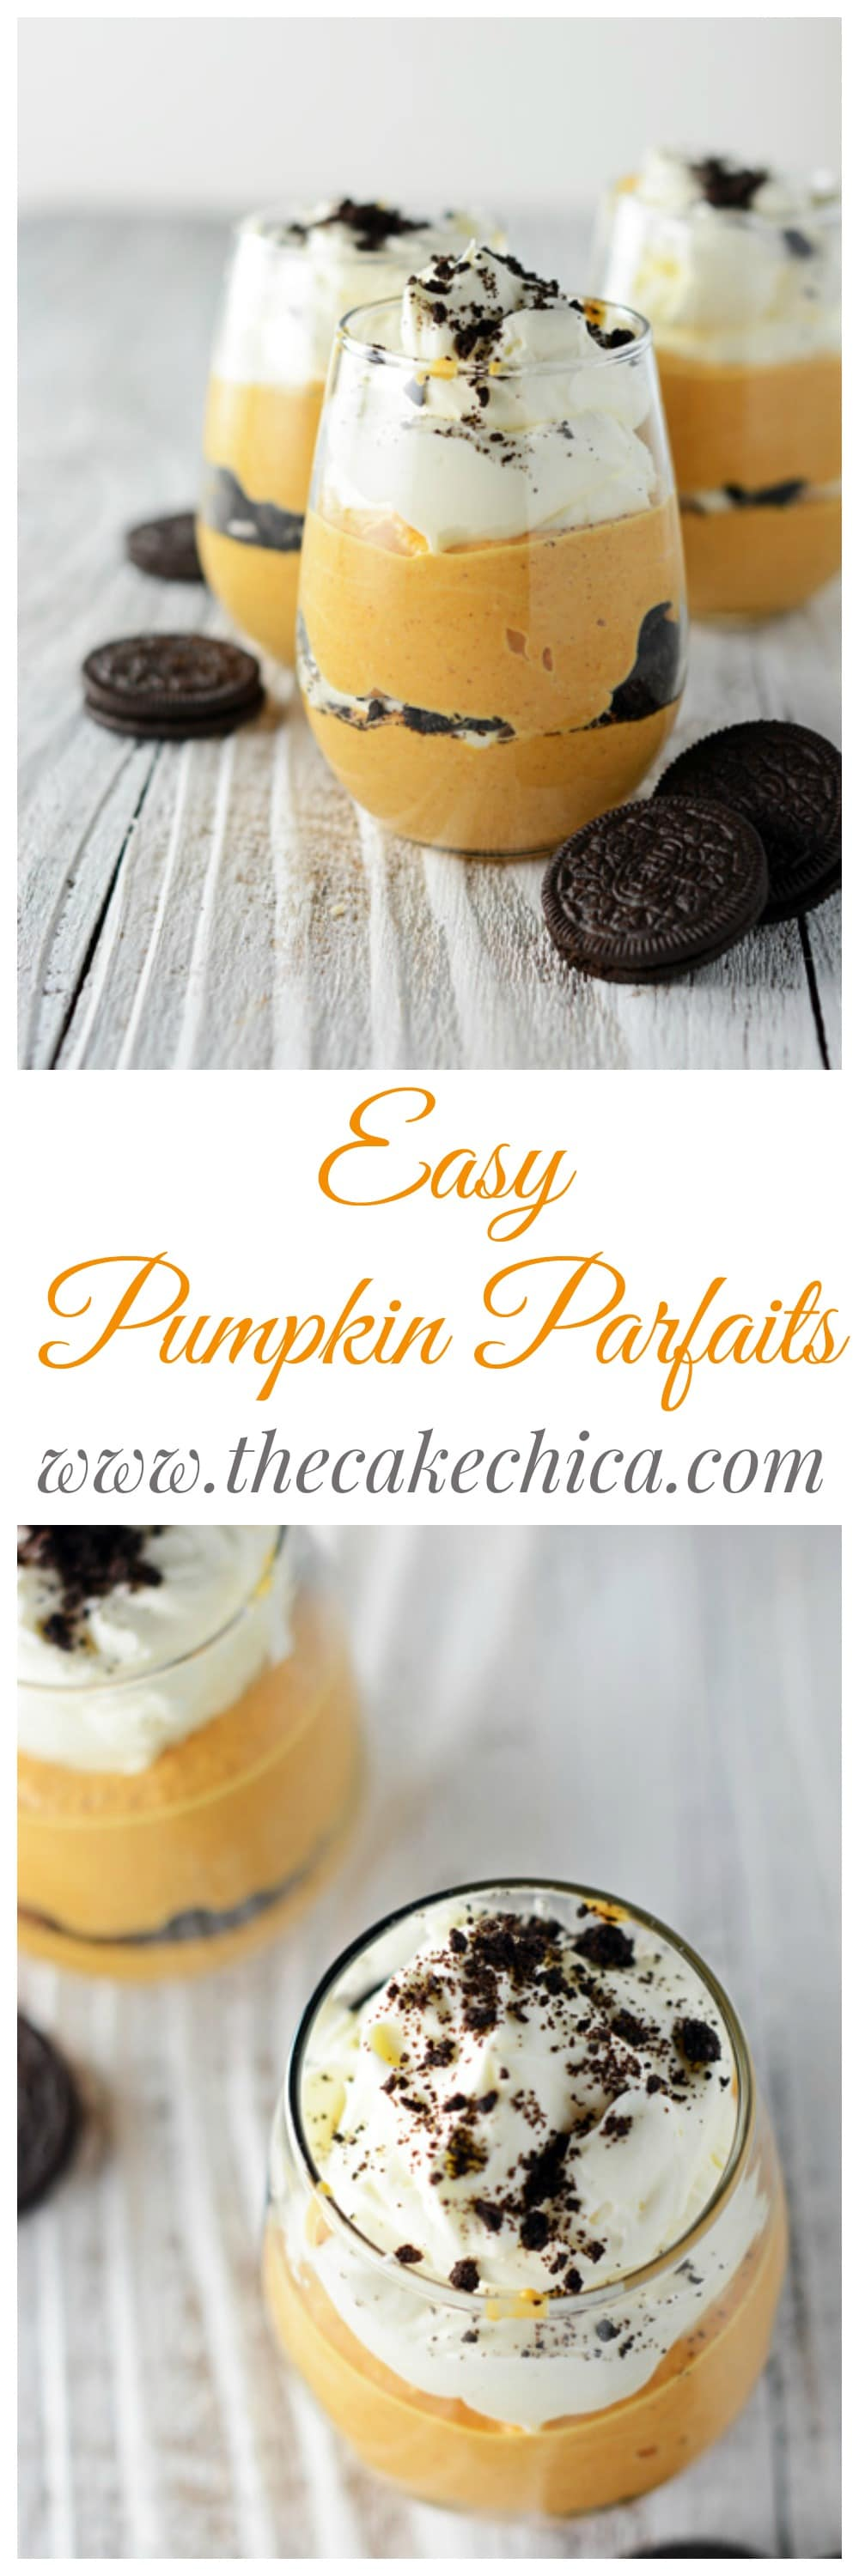 Easy Pumpkin Parfaits